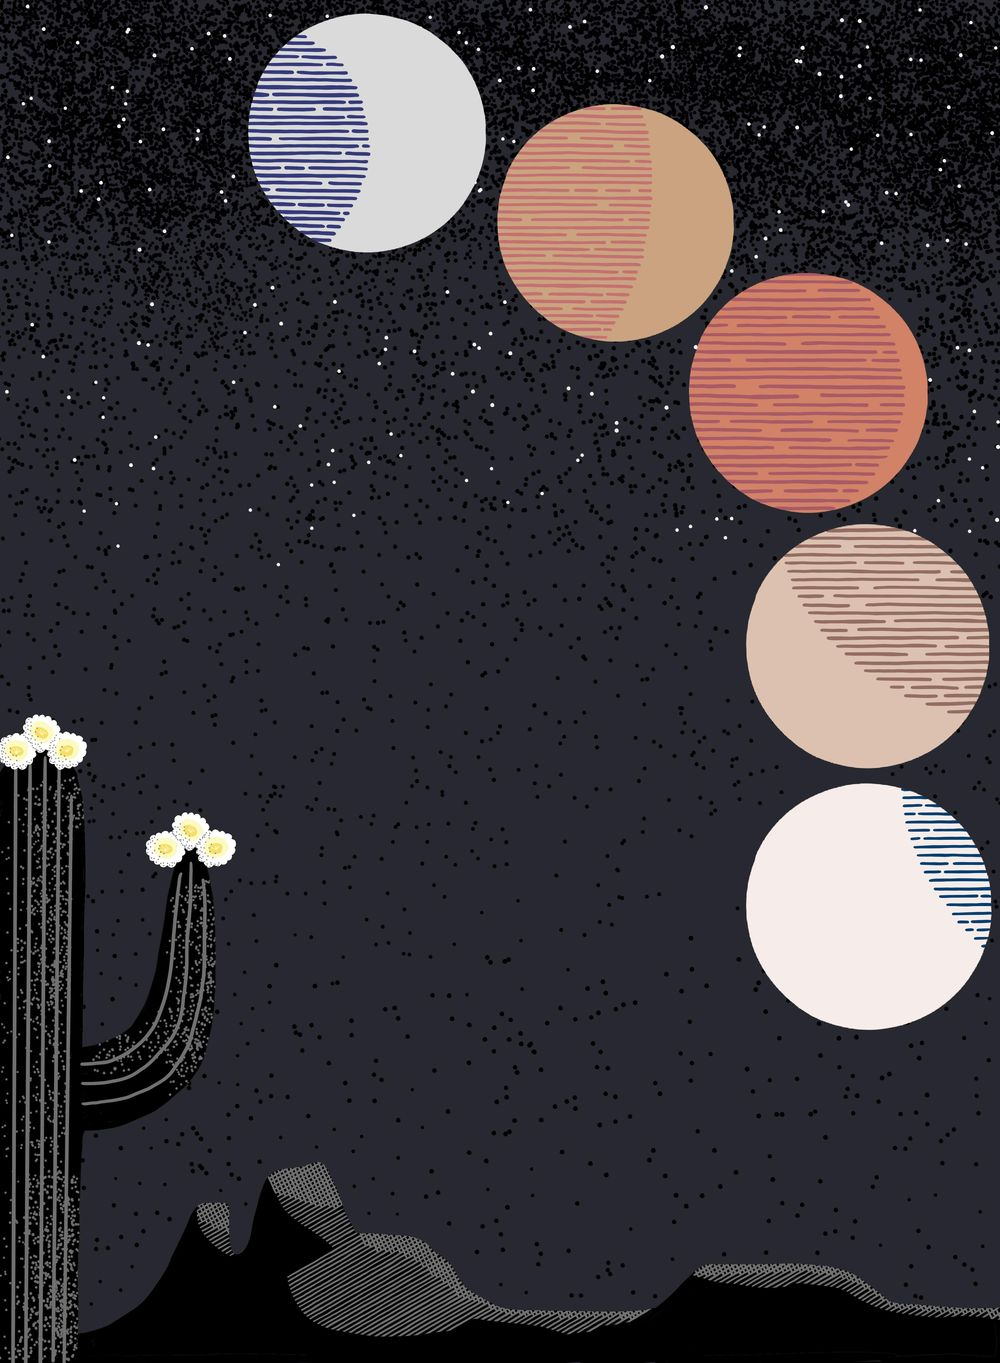 Lunar Eclipse In The Desert - image 1 - student project